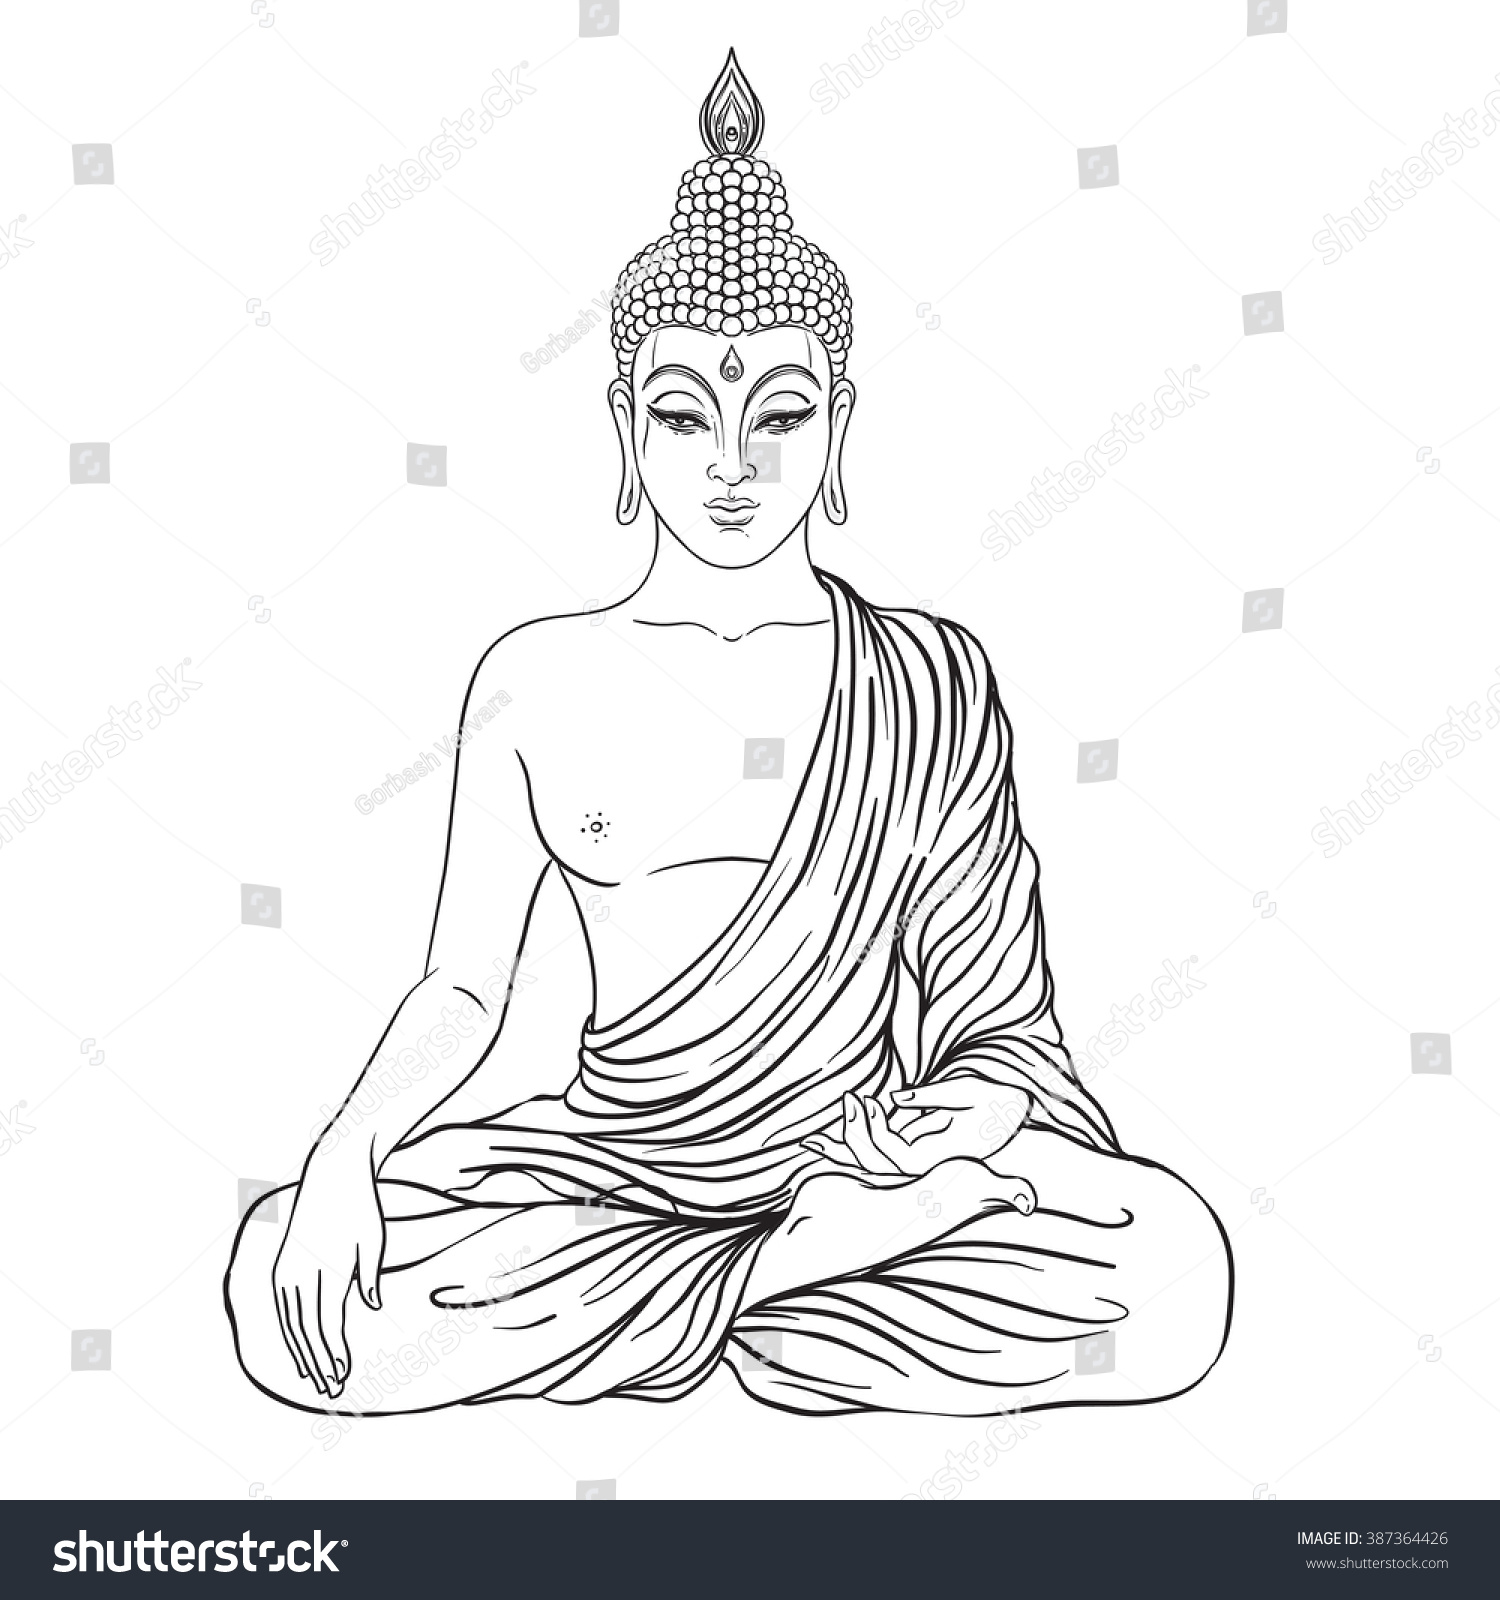 buddha coloring pages - sitting buddha isolated on white esoteric stock vector